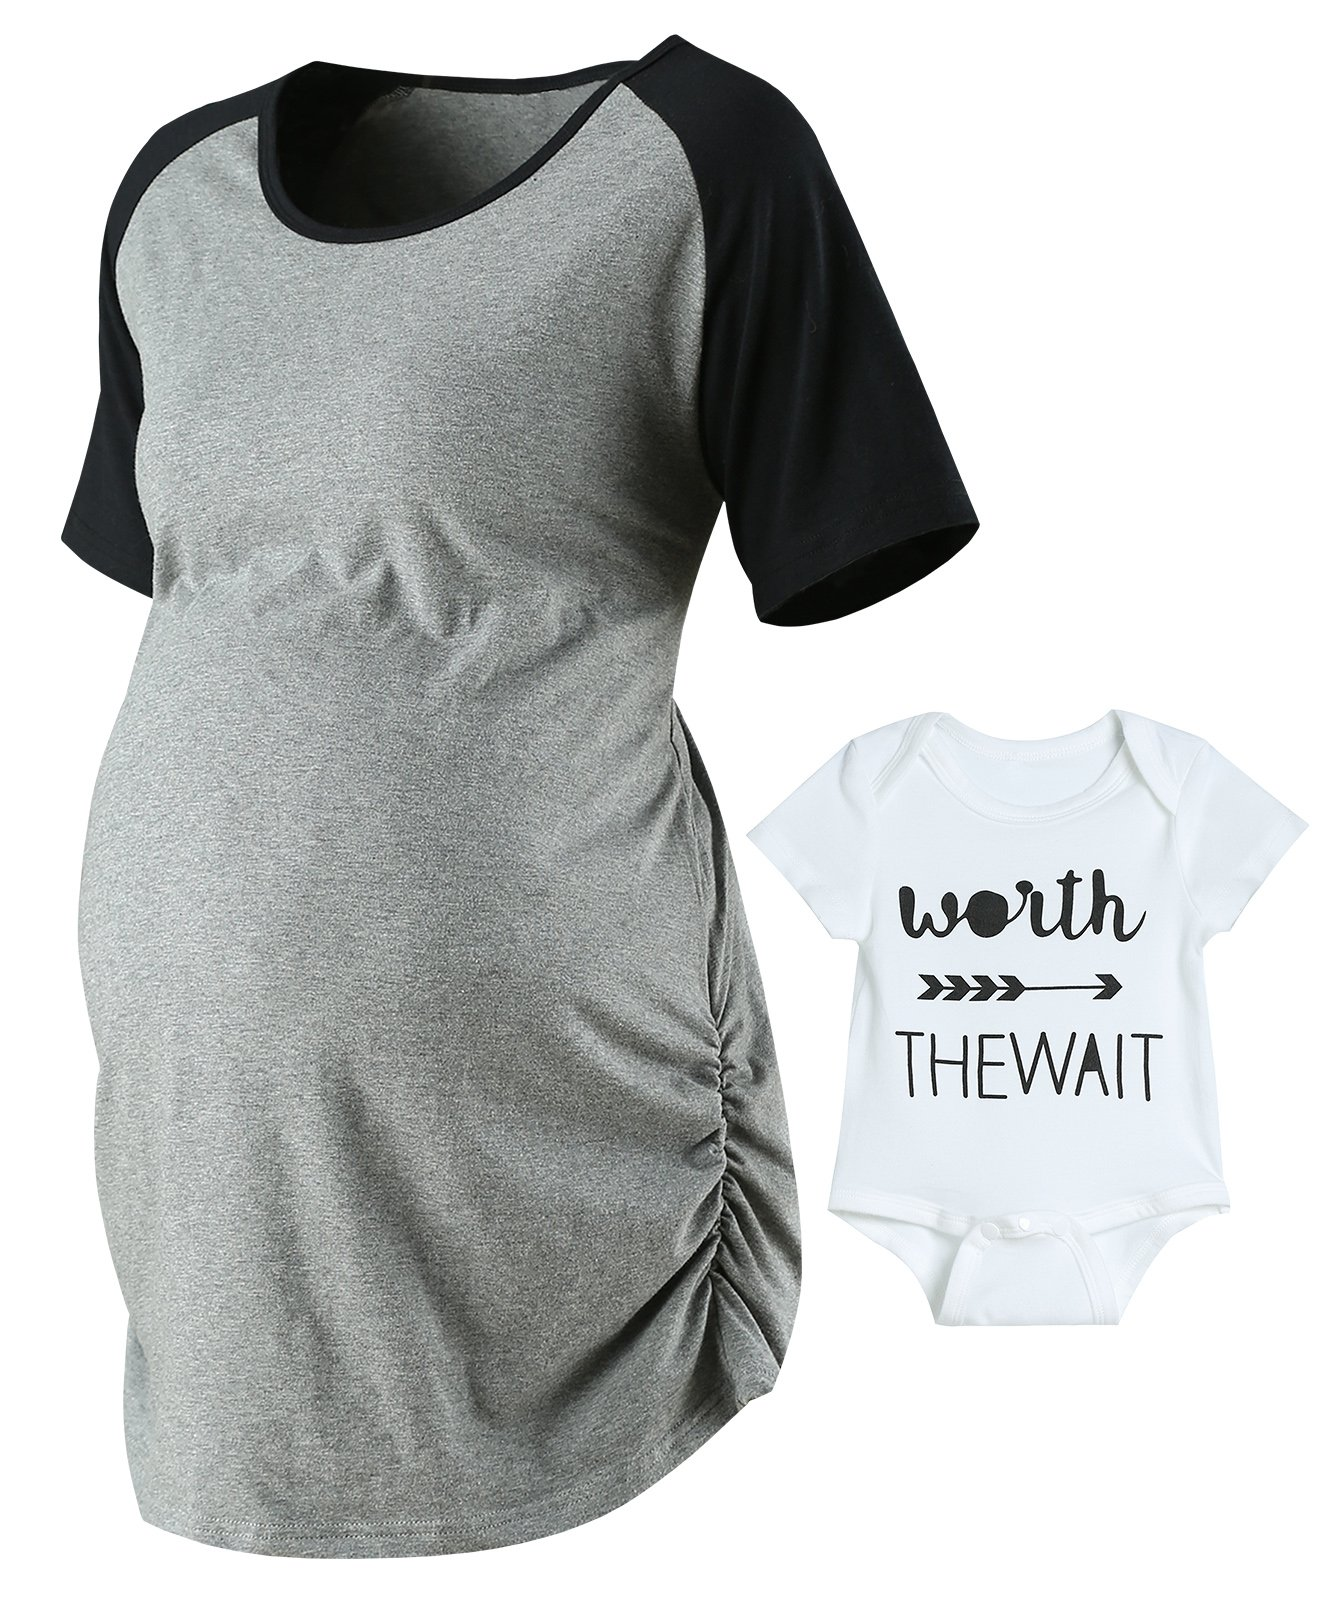 Lorjoy Women's Raglan Sleeve T-Shirt Summer Side Ruched Maternity Tops Fitted Pregnancy Clothes (XL)